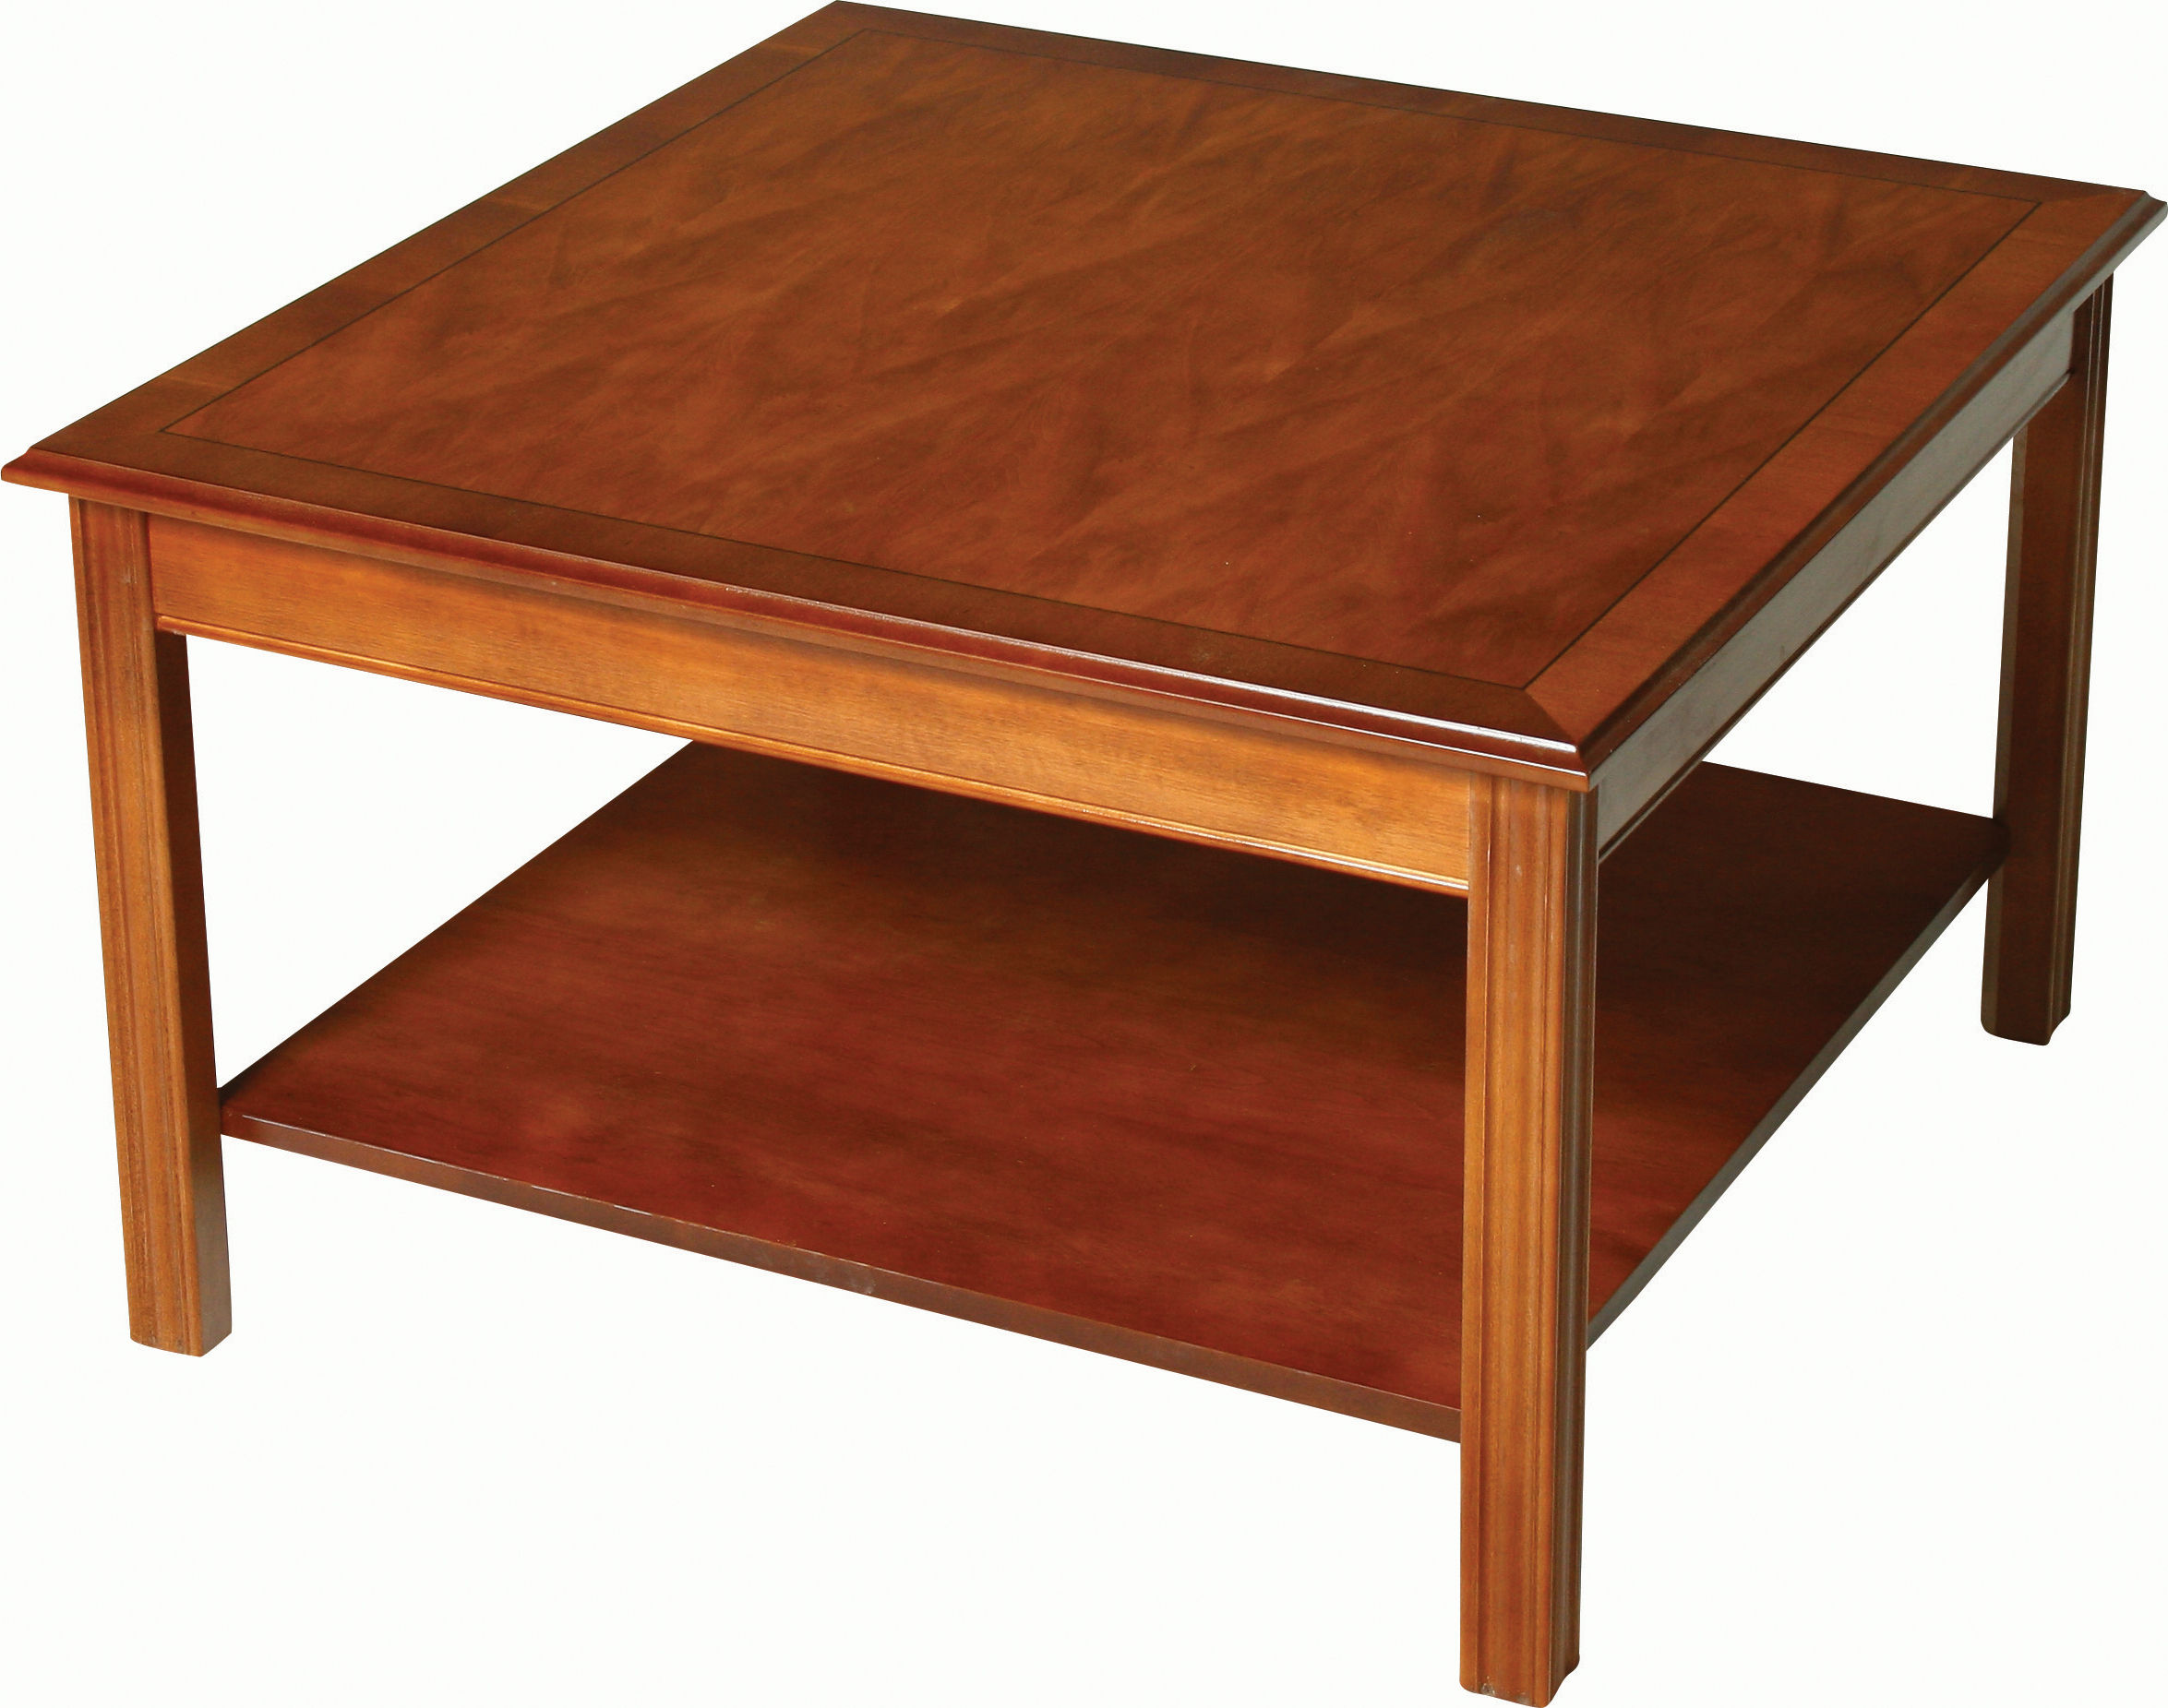 2019 Paris Natural Wood And Iron 30 Inch Square Coffee Tables In 57 30 Inch Square Coffee Table, Avenue Six Merge Black 30 (Gallery 9 of 20)